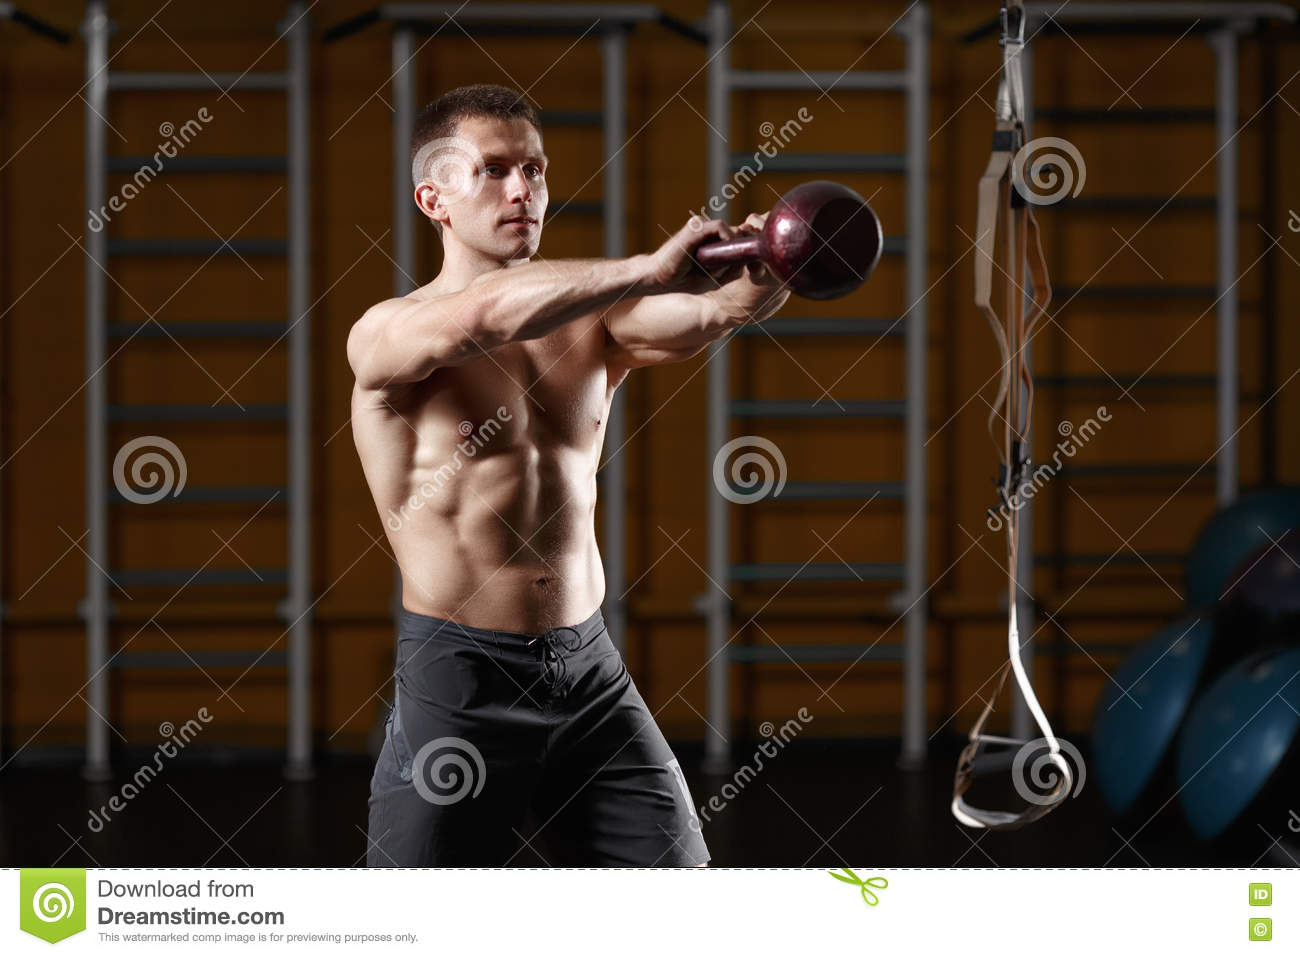 Kettlebell Bodybuilding Fitness Man Doing A Weight Training By Lifting Kettlebell Stock